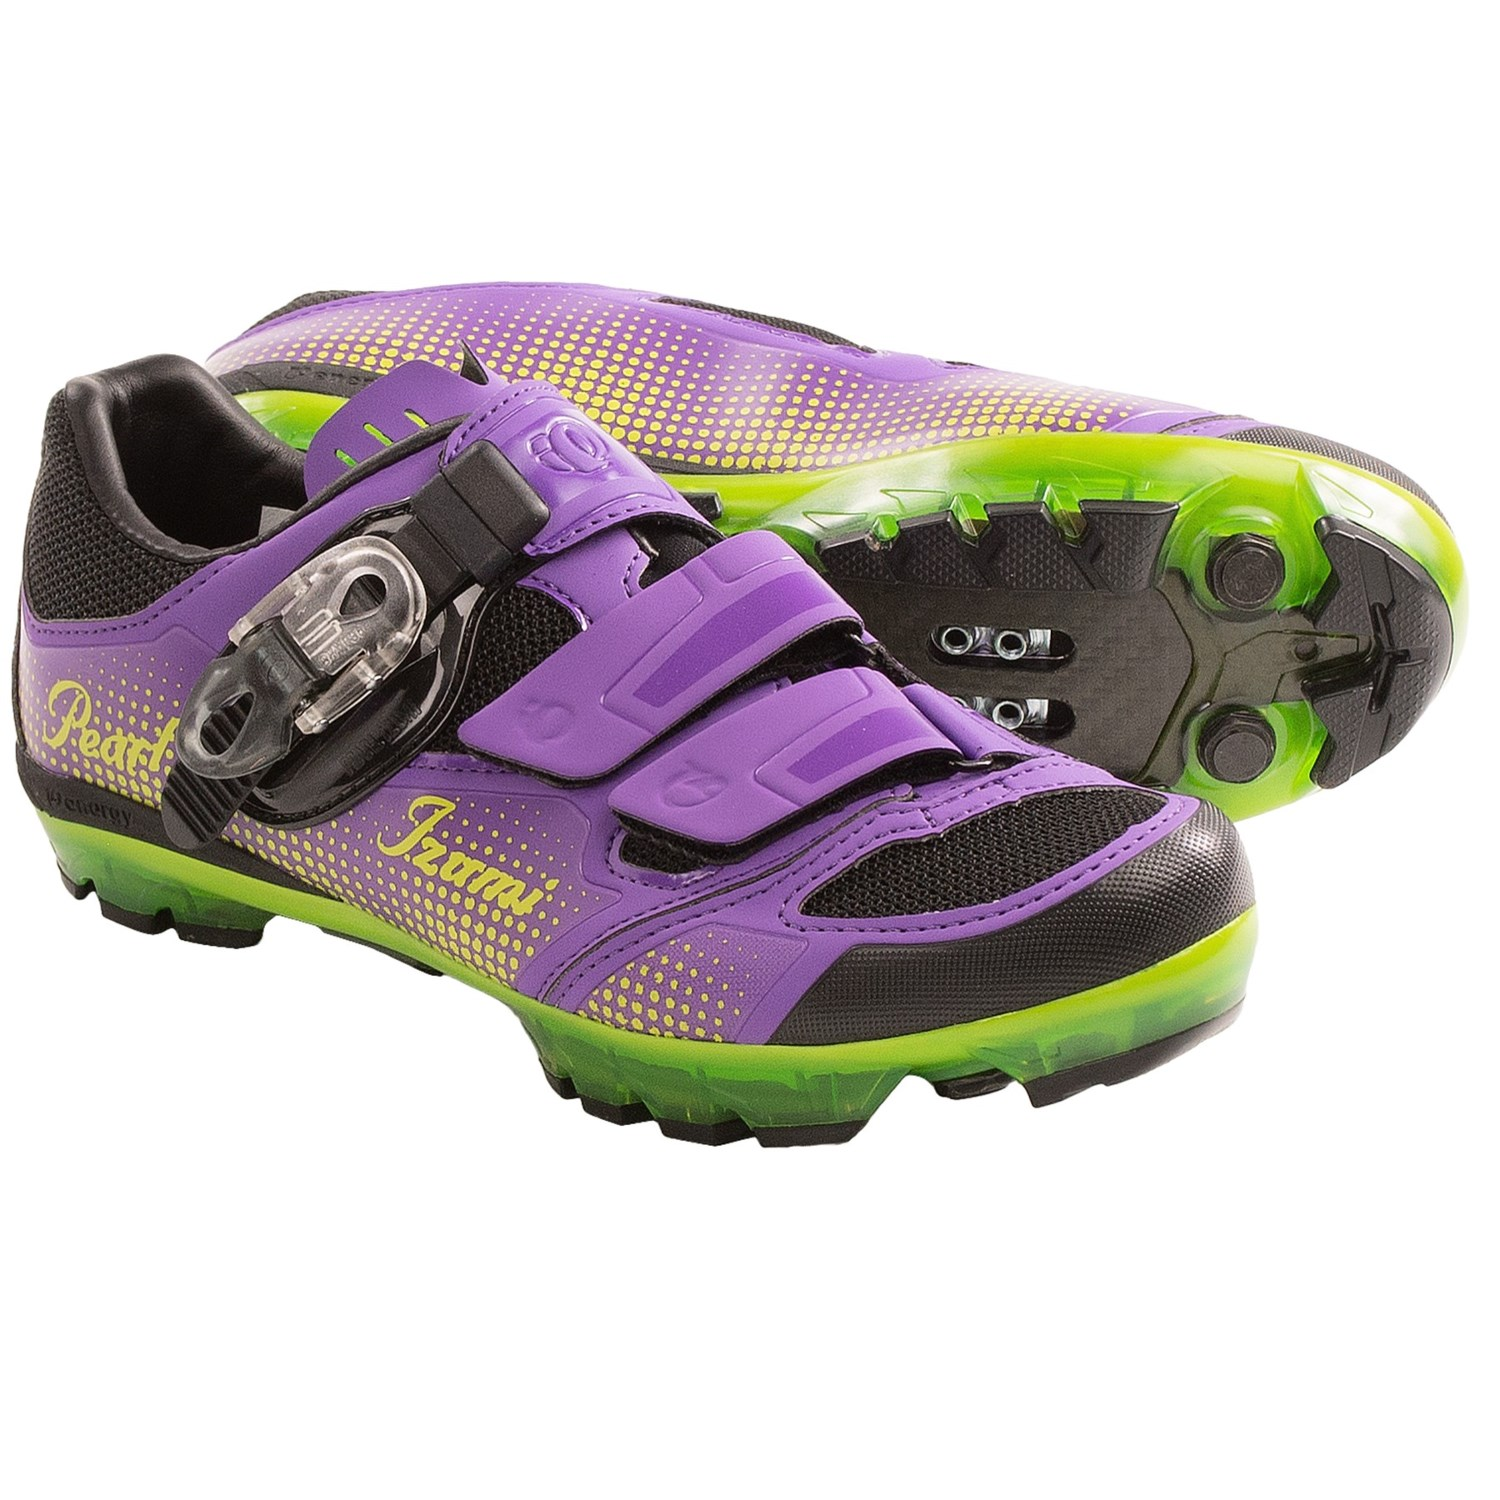 Differences Between Cycling Shoes and Others